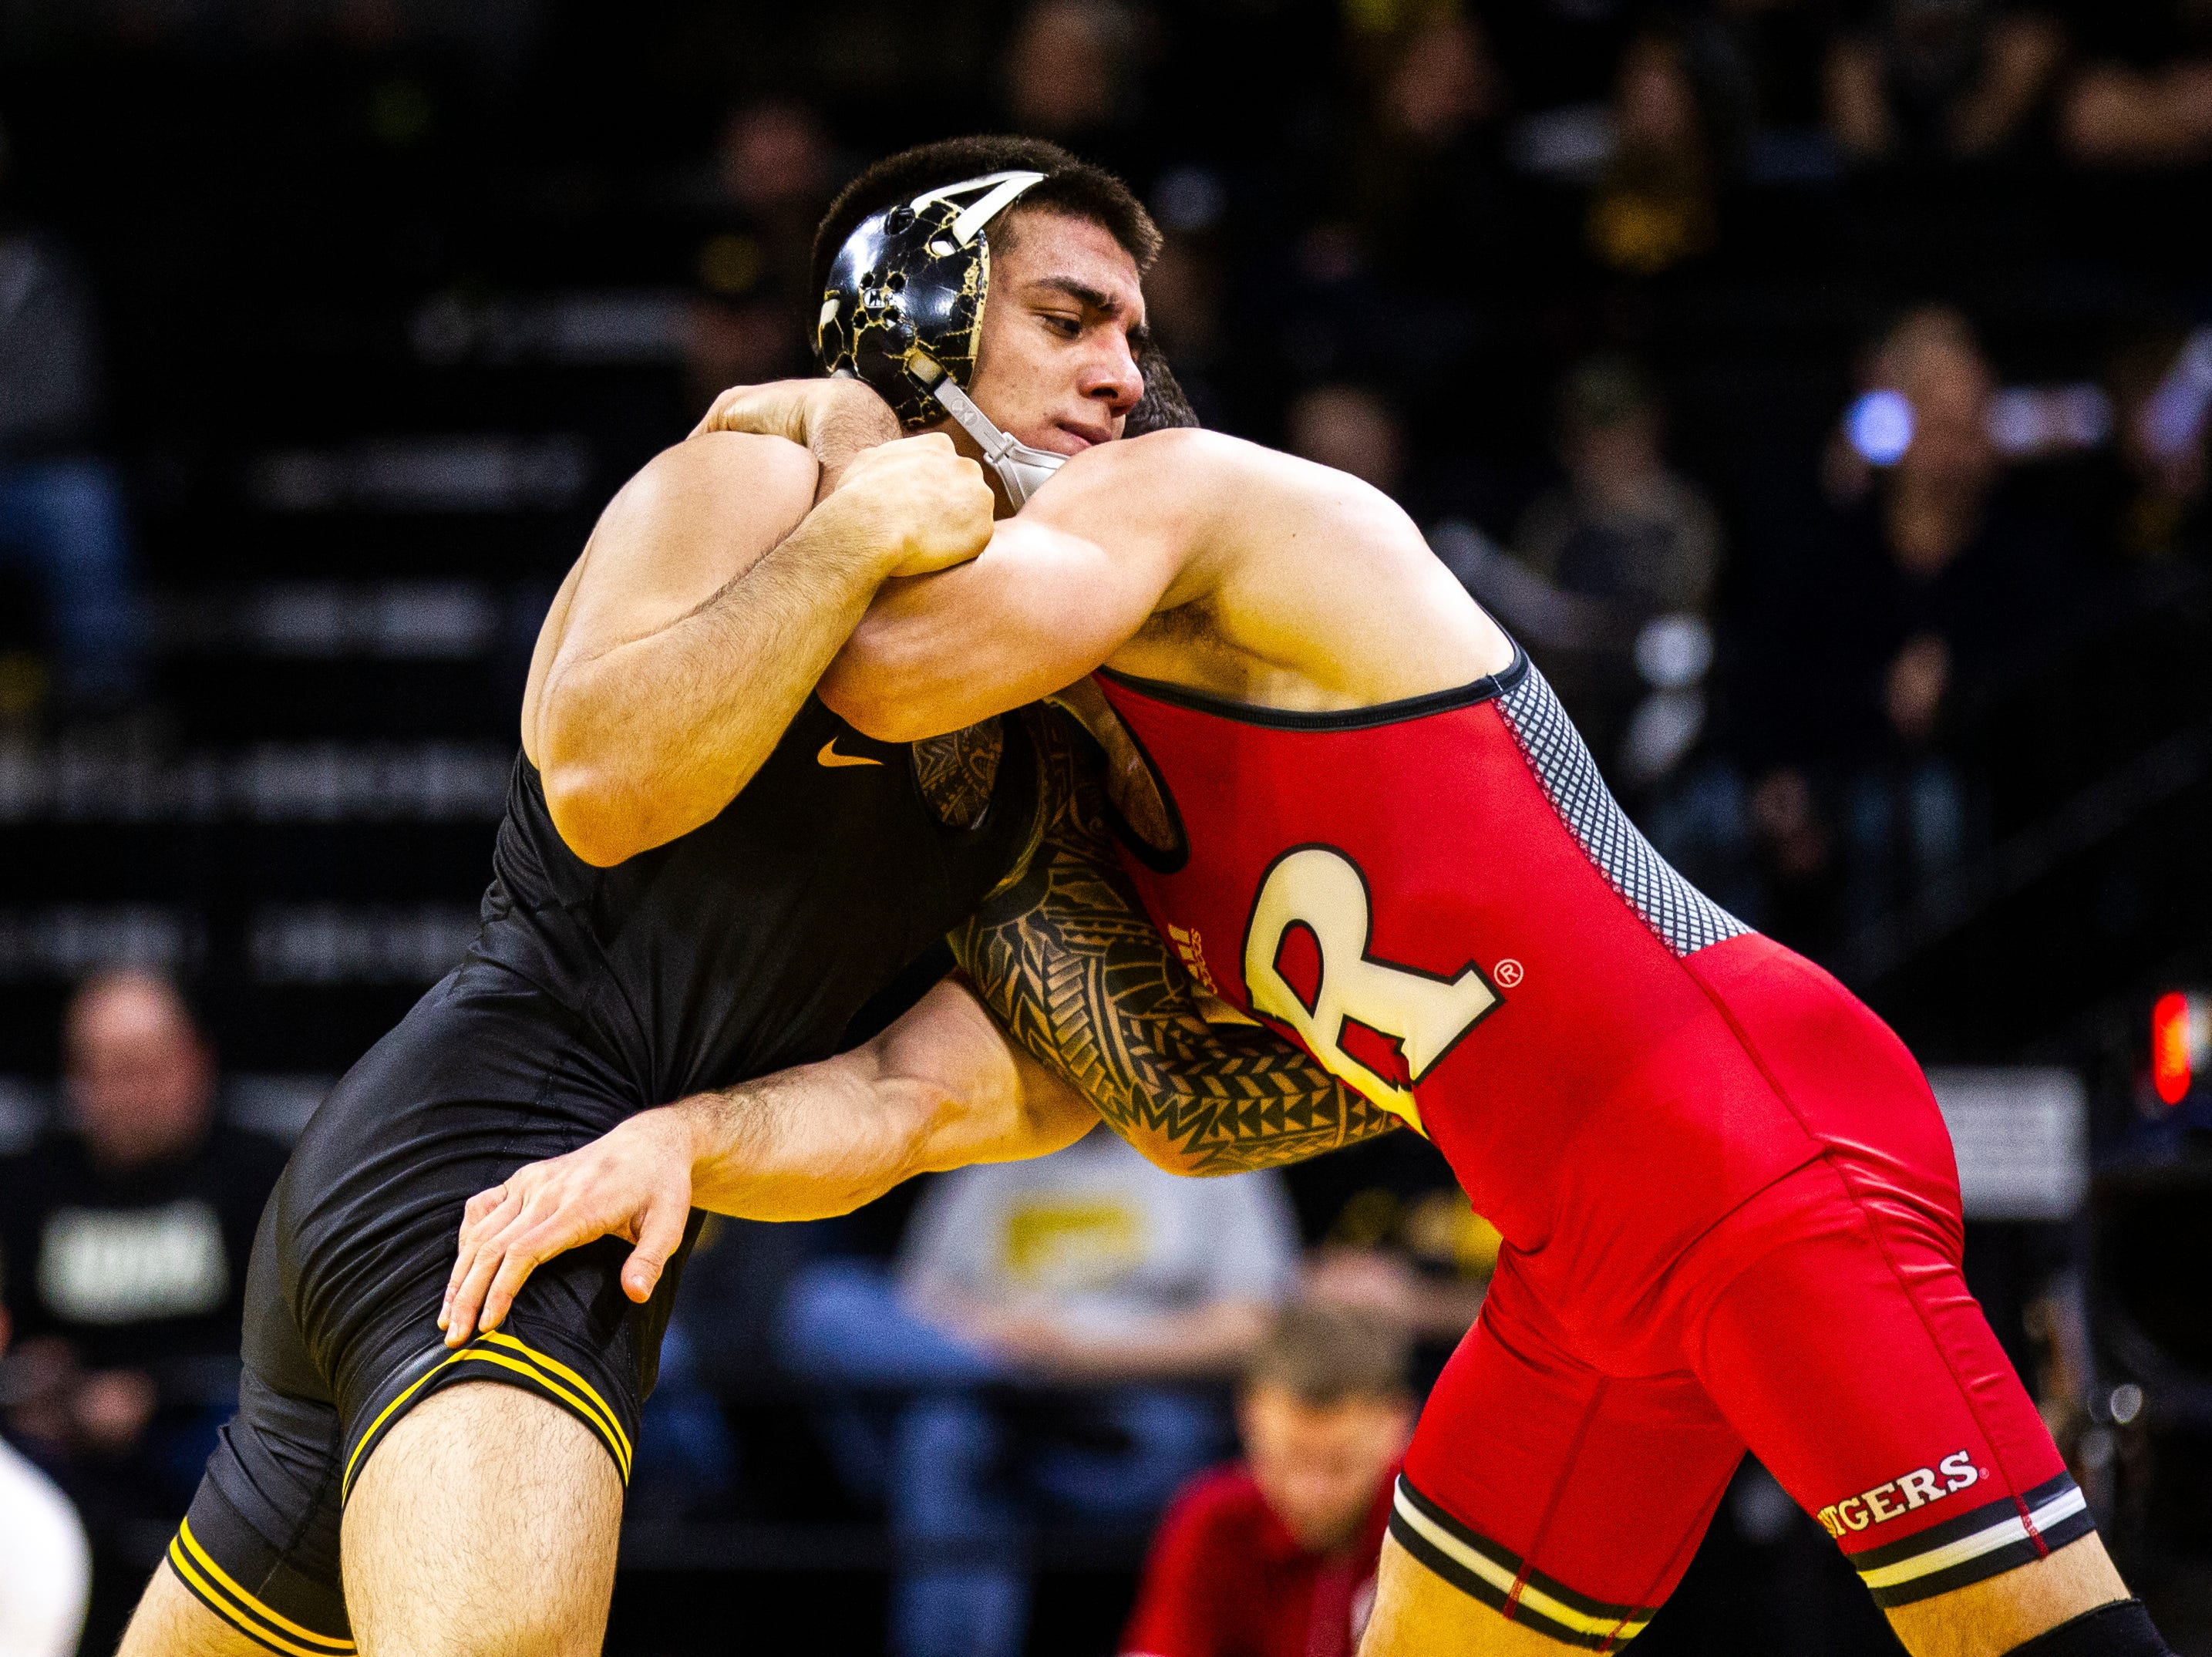 Iowa's Pat Lugo, left, wrestles Rutgers' Anthony Ashnault at 149 during a NCAA Big Ten Conference wrestling dual on Friday, Jan. 18, 2019, at Carver-Hawkeye Arena in Iowa City, Iowa.